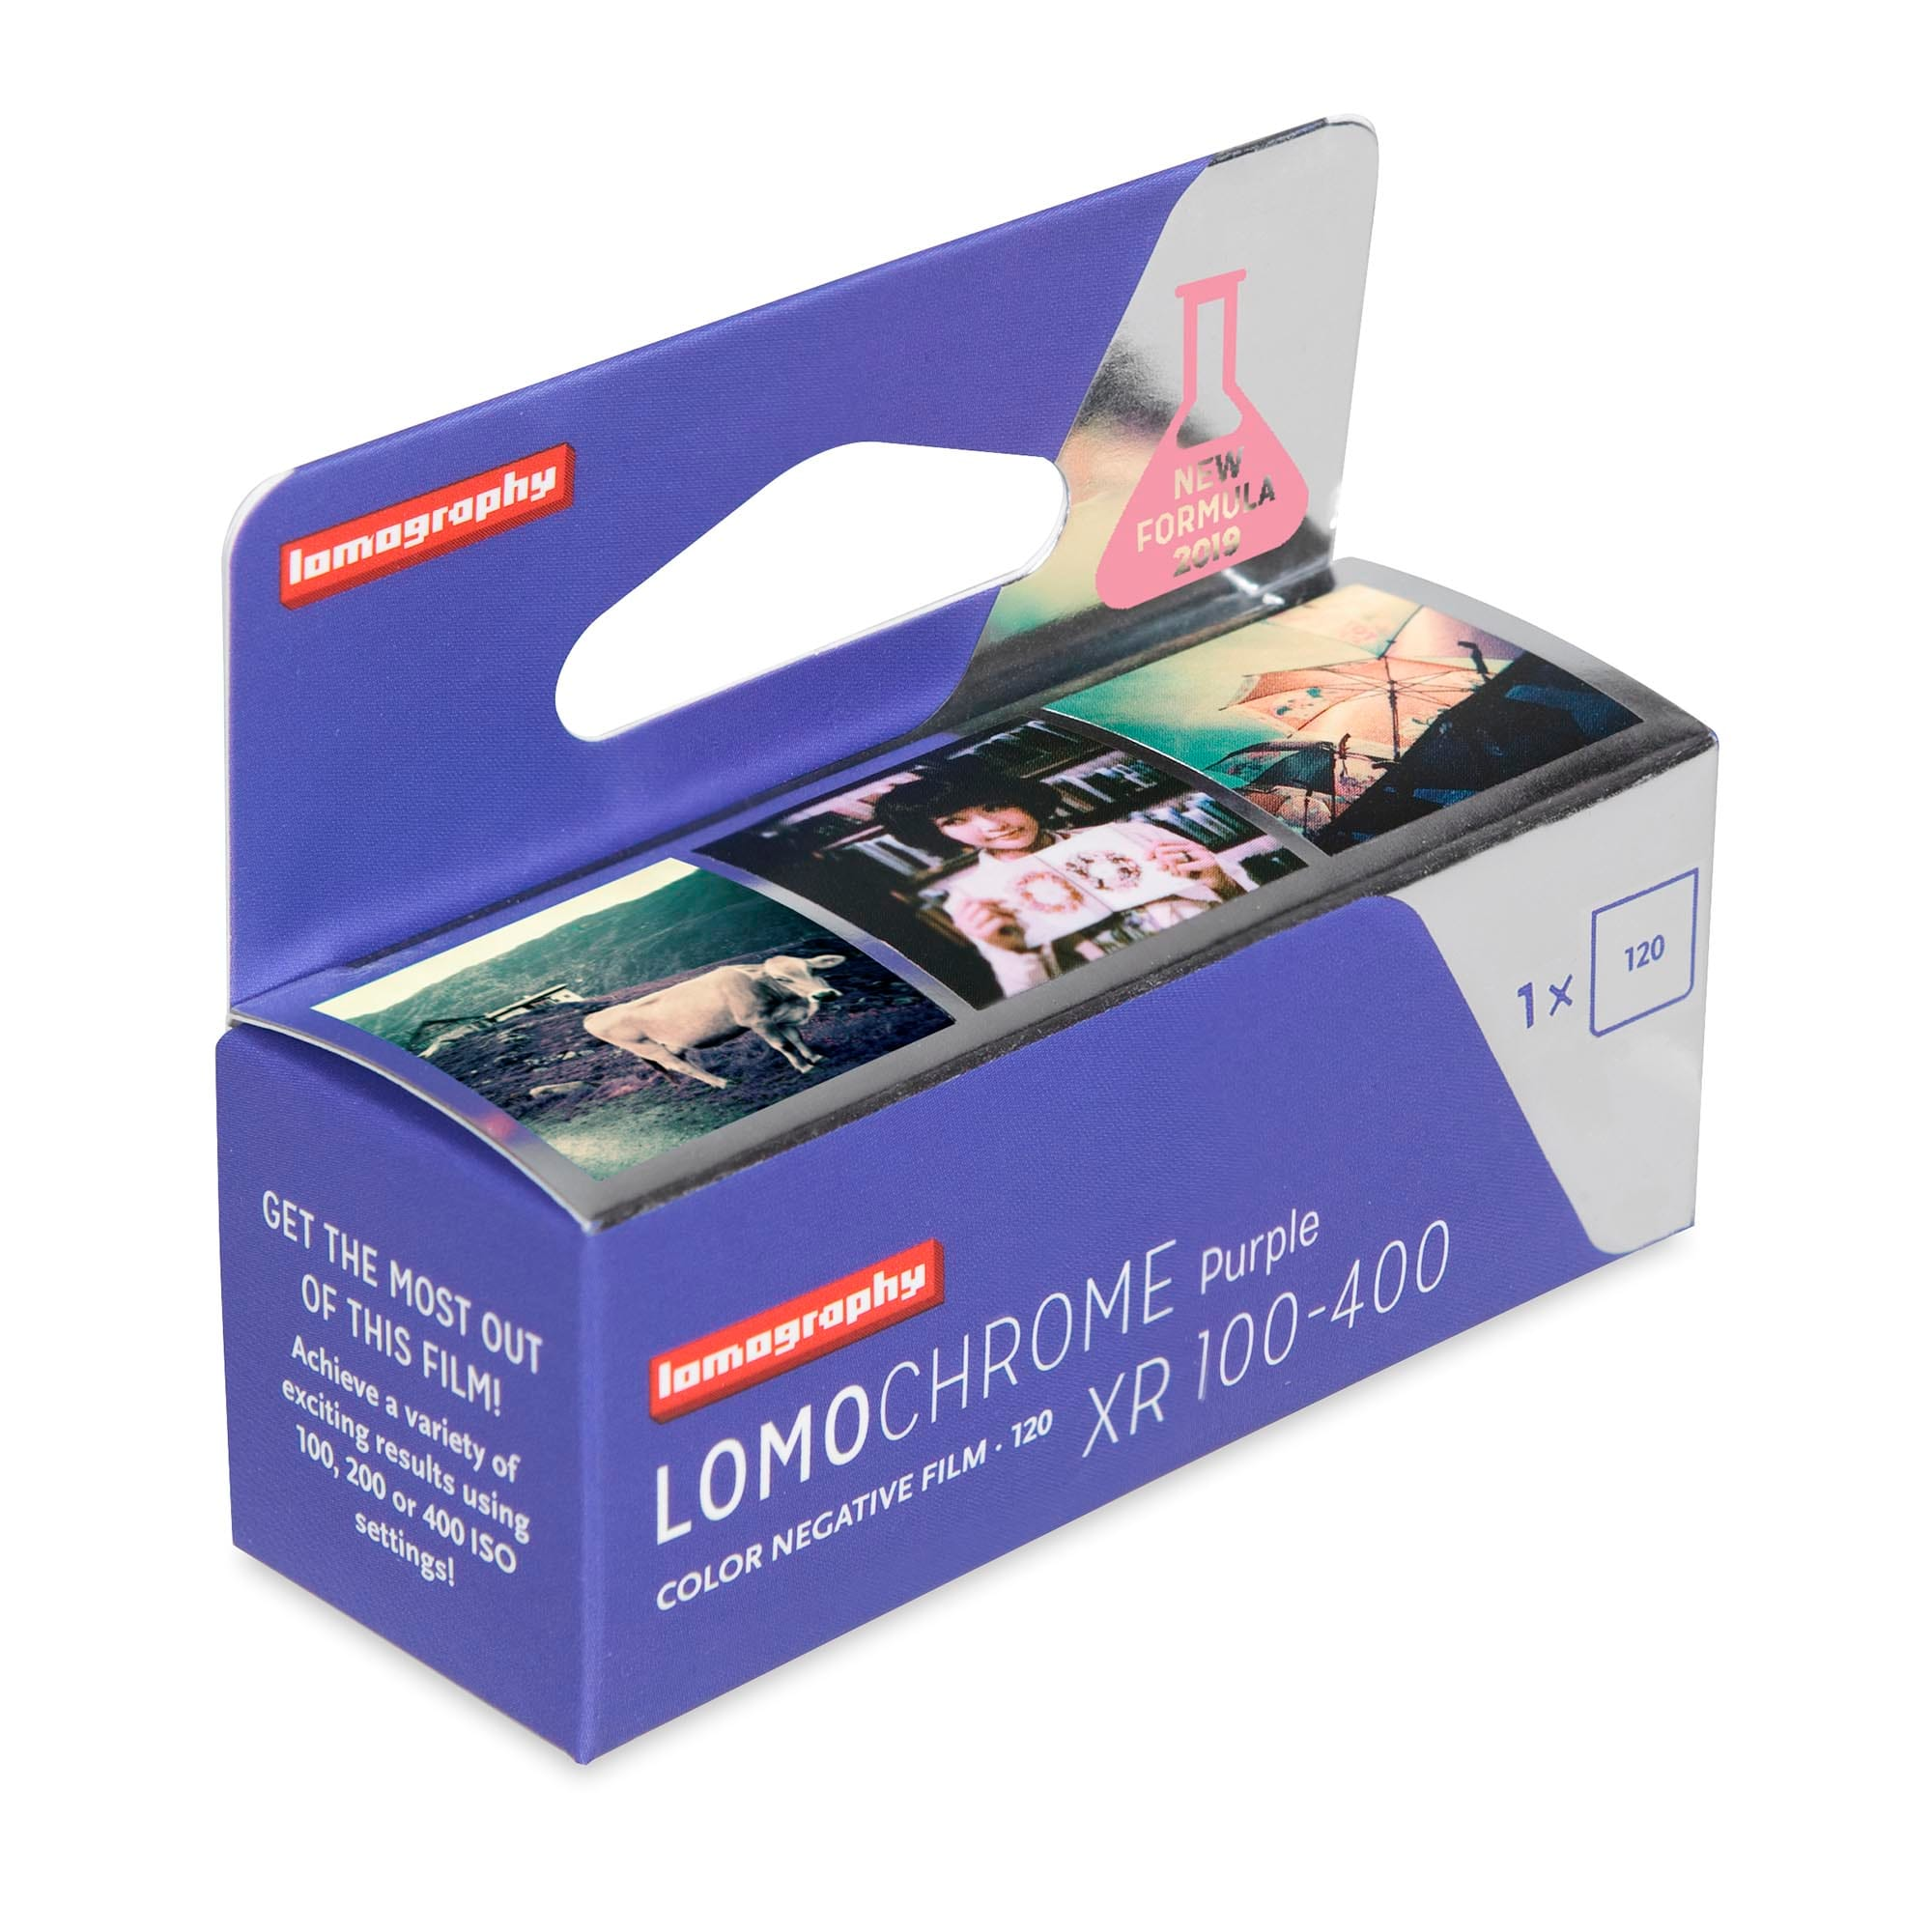 Lomography Purple new formula 120mm film